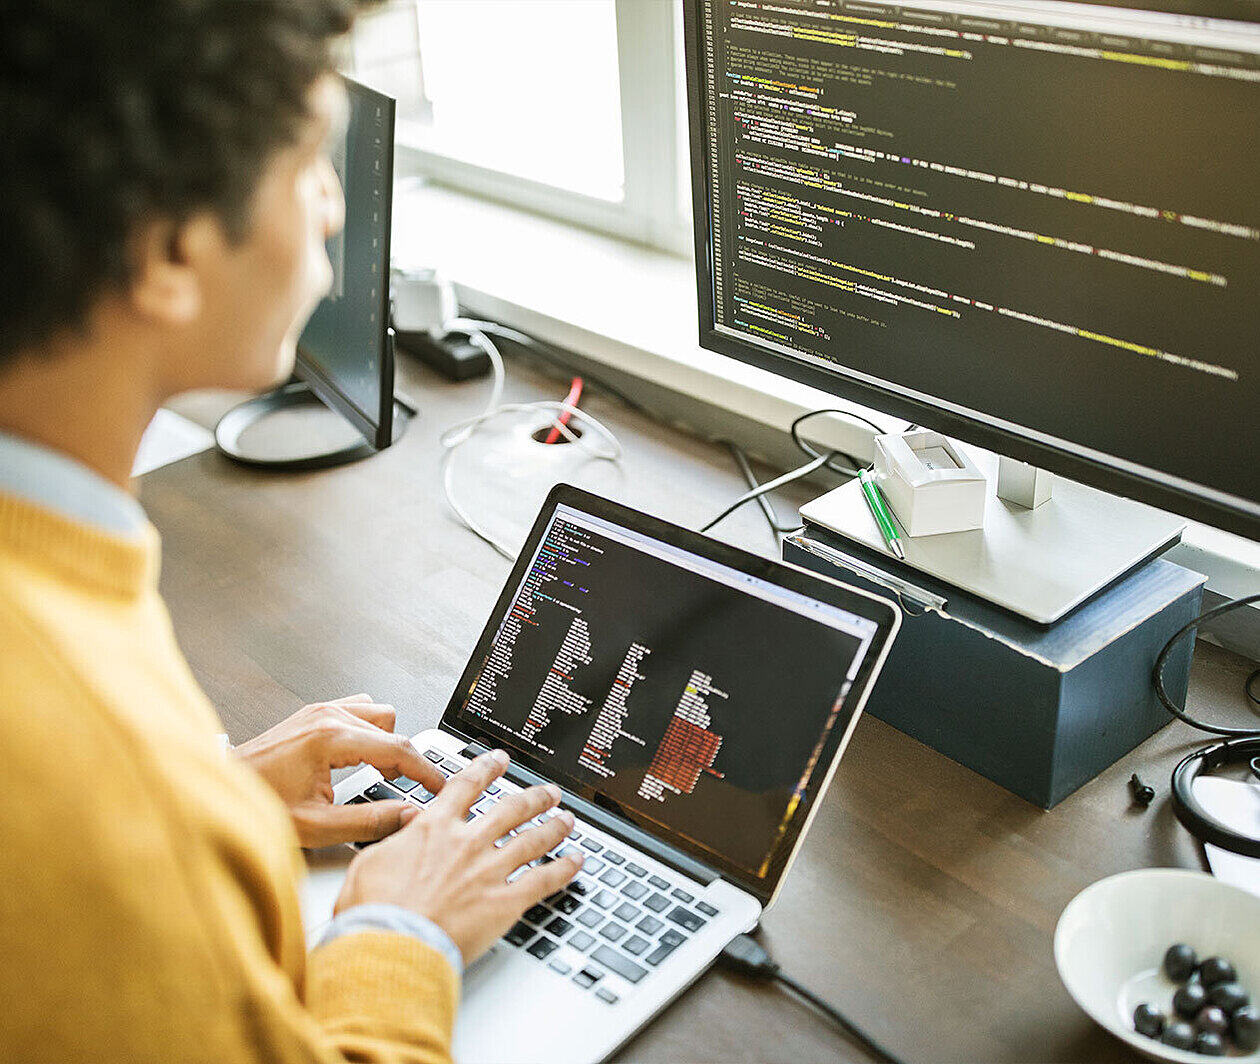 Programming Applications with Python: Graphics User Interface (GUI)